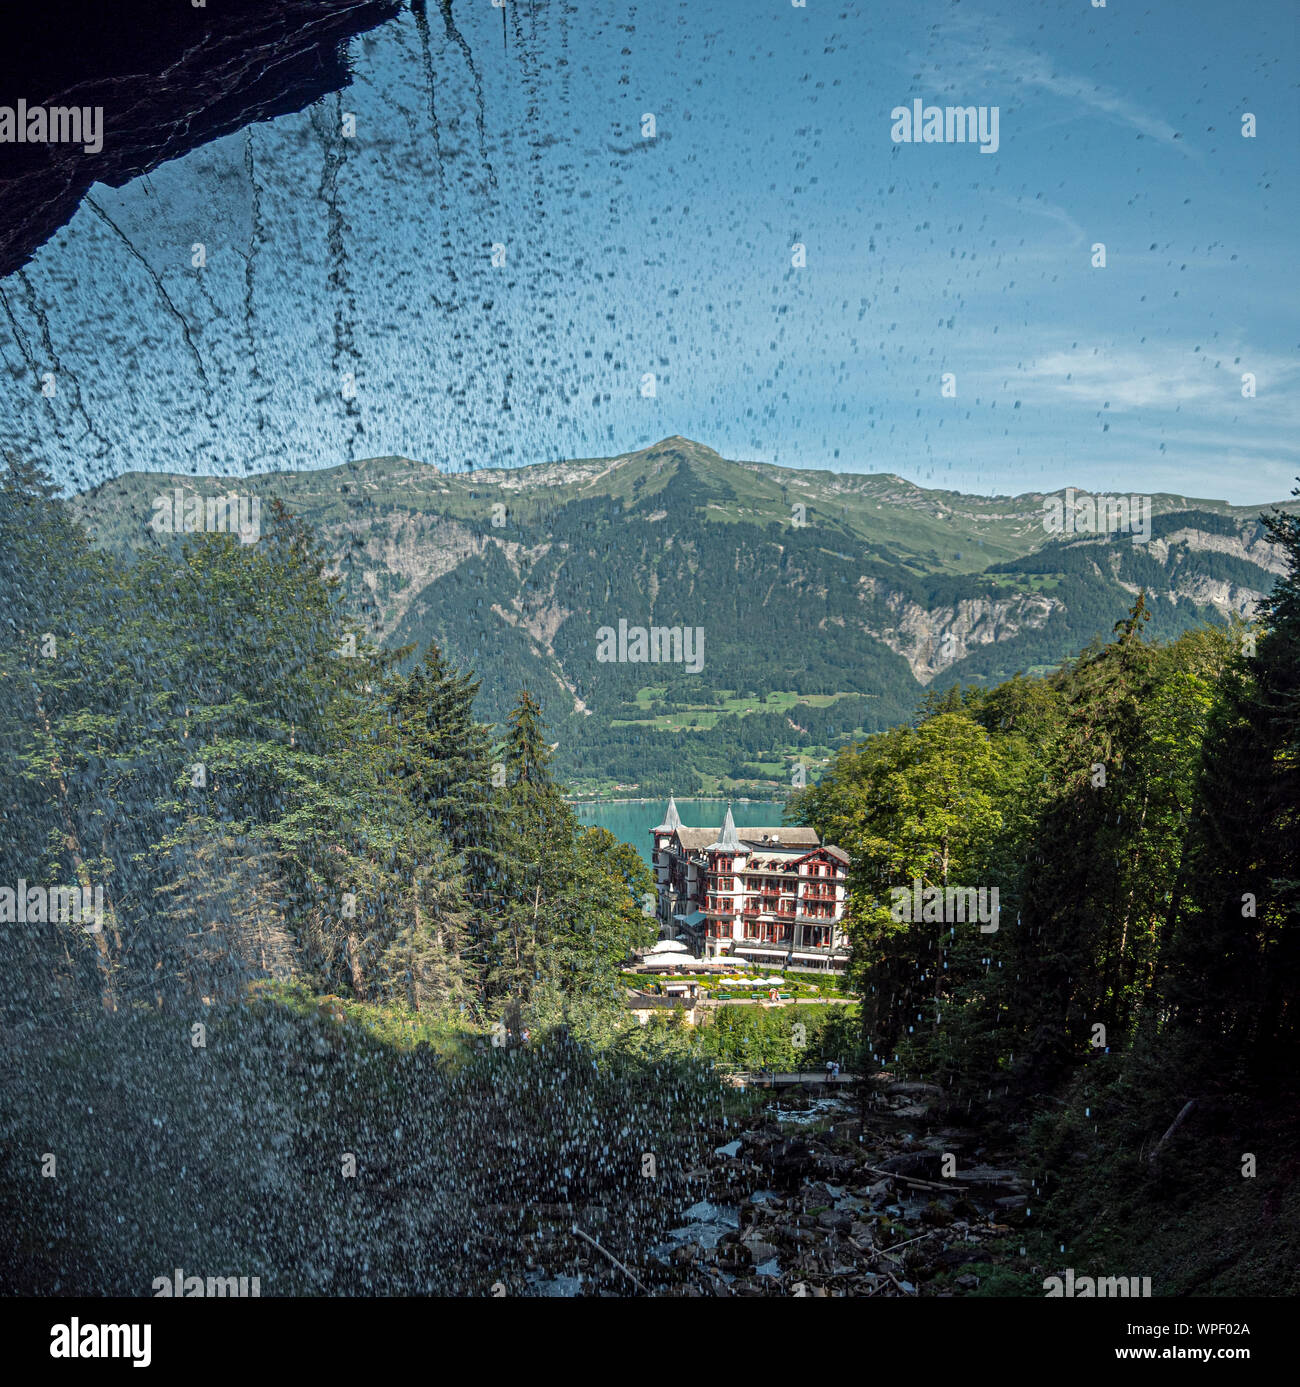 a Postcard photo of the Giessbach falls and hotel in central switzerland. Taken from perspective of  behind the waterfalls as the water falls in front Stock Photo